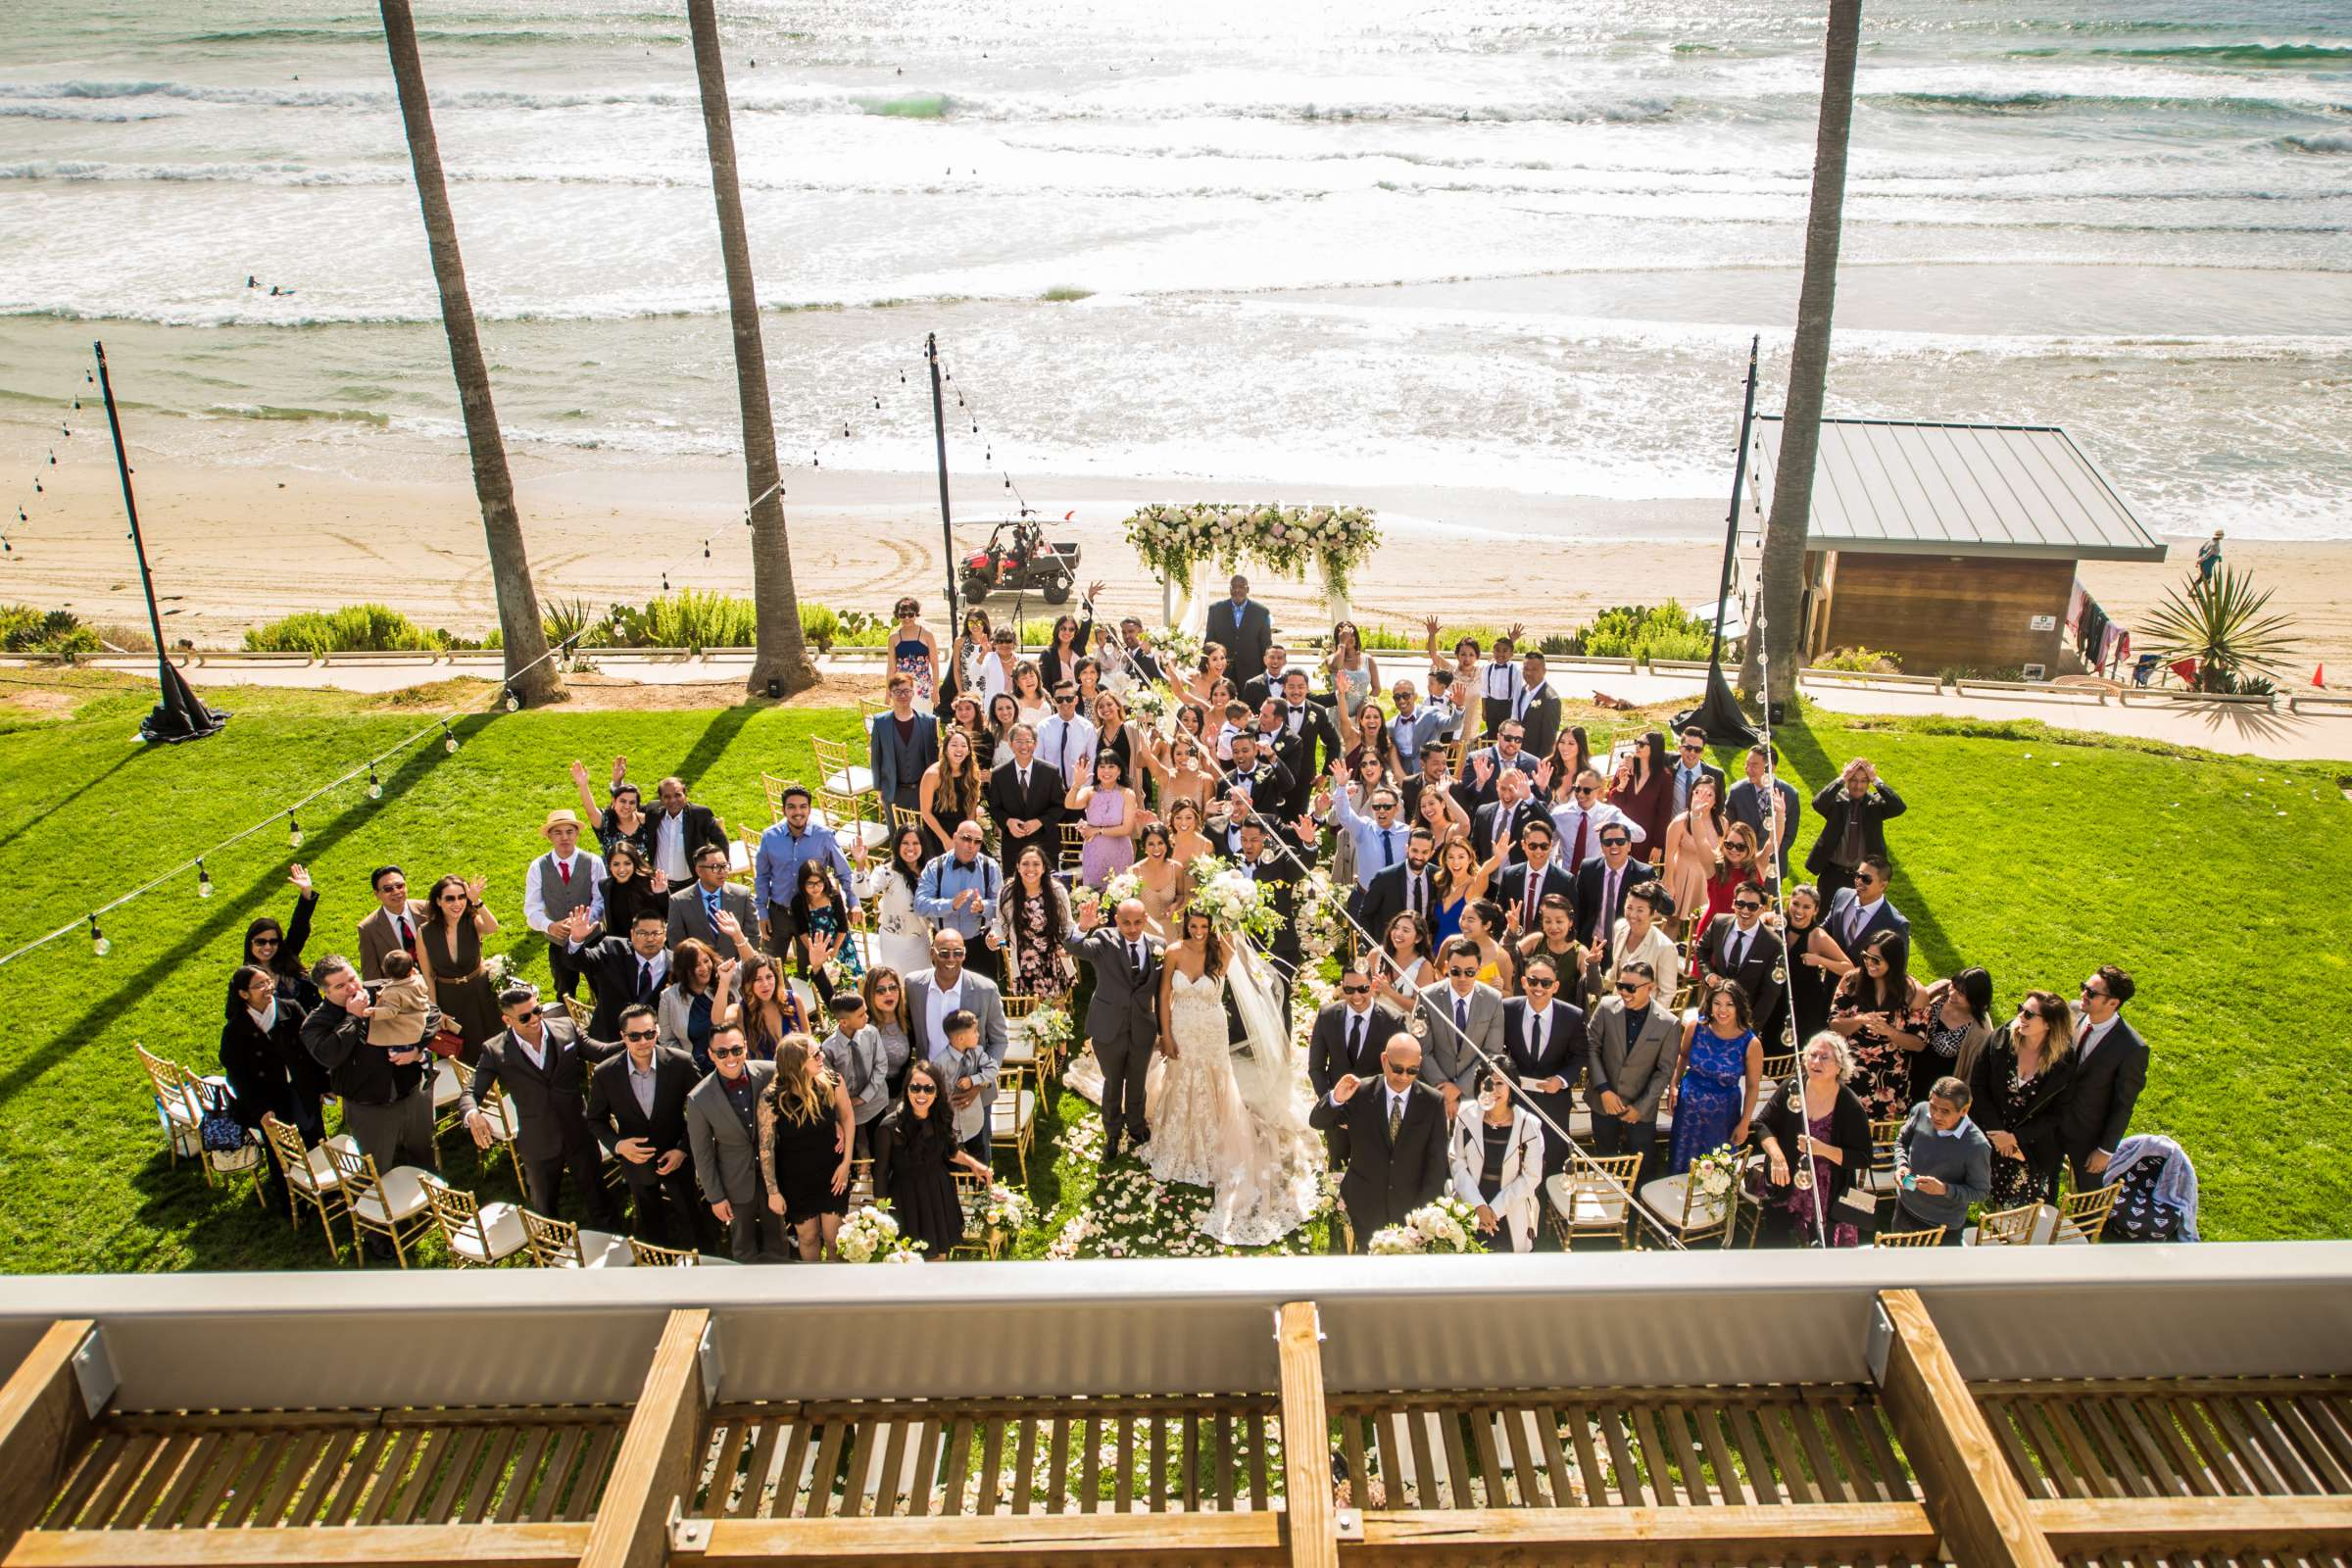 Scripps Seaside Forum Wedding coordinated by Lavish Weddings, Cindy and Justin Wedding Photo #381839 by True Photography